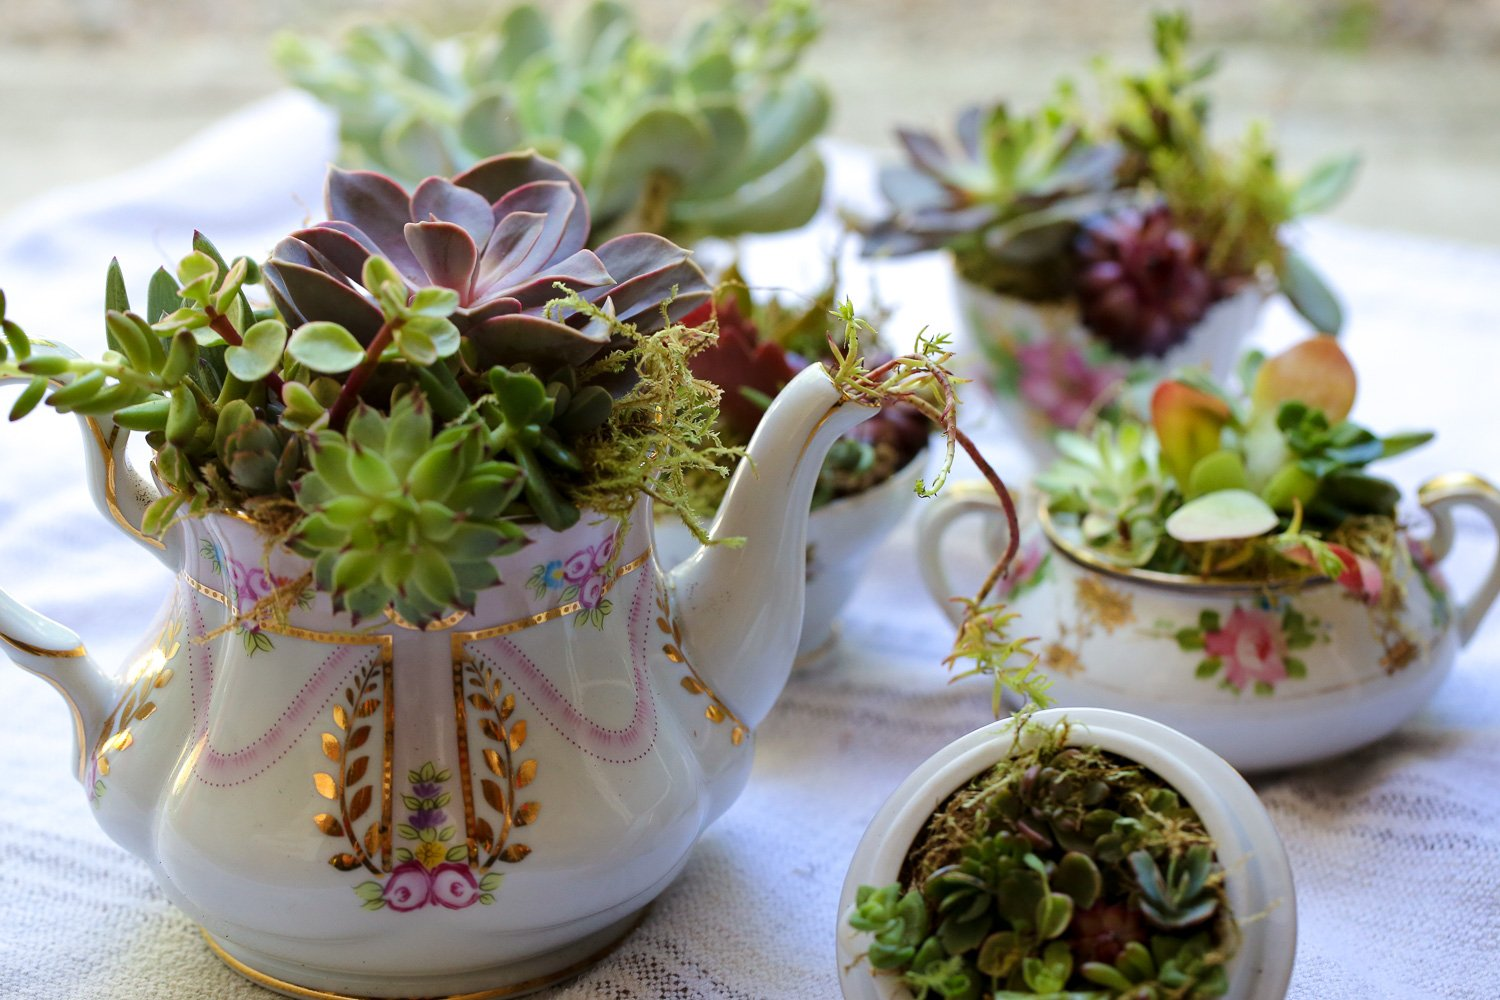 Original_Caughey-MelissaCaughey- succulent tea party tablescape